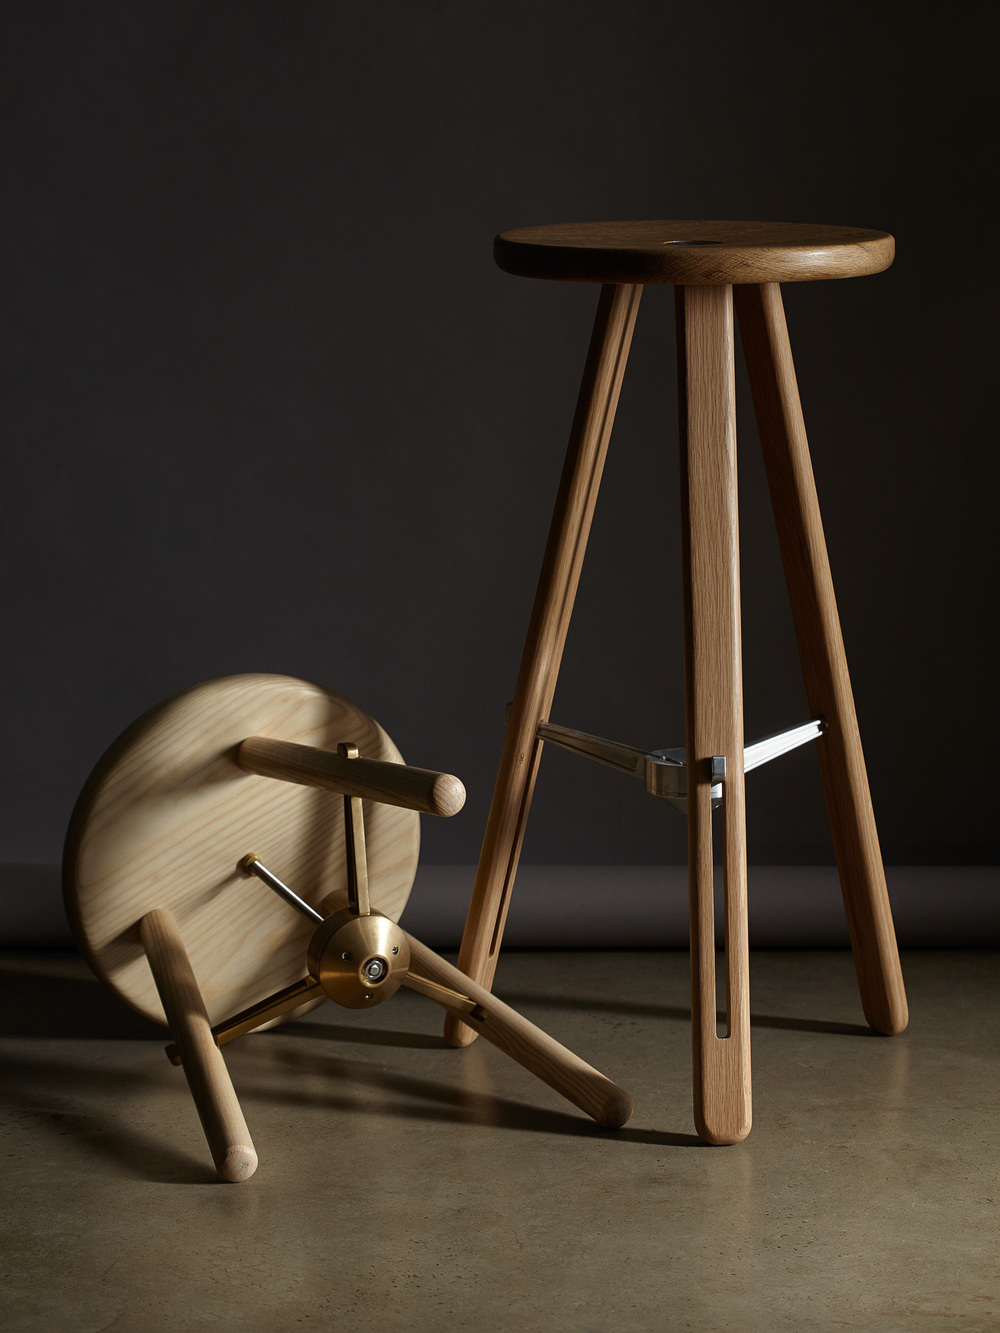 'Harpoon' stools by daast. Photo: Rodrick Bond